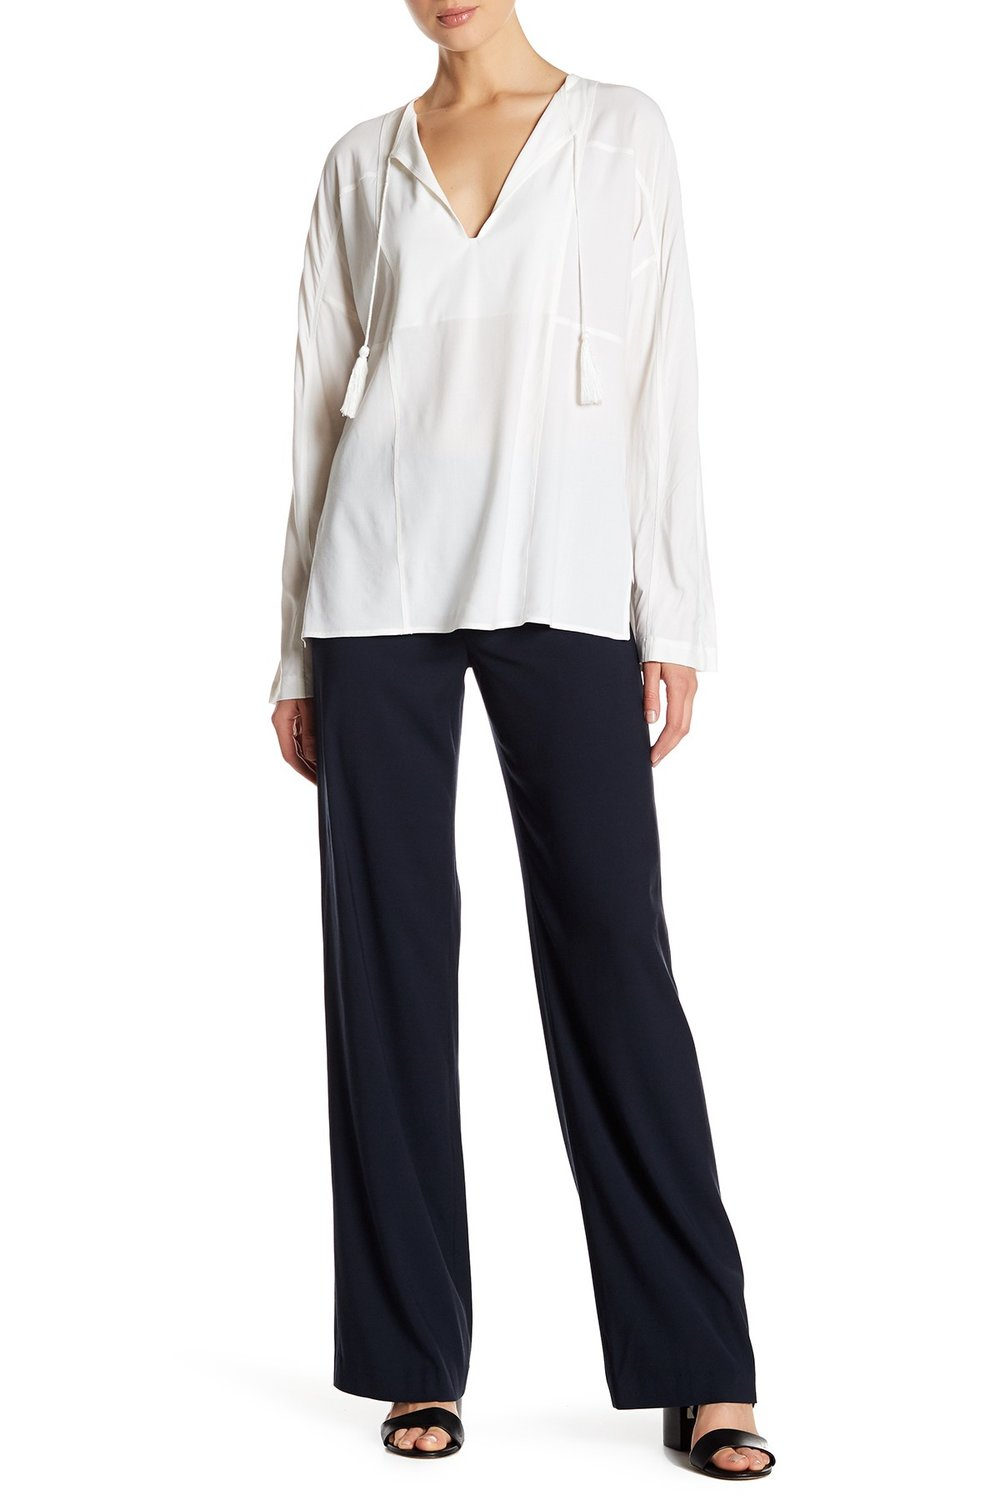 Vince Wide Leg Pant. Nordstrom Rack. Was: $325. Now: $149.